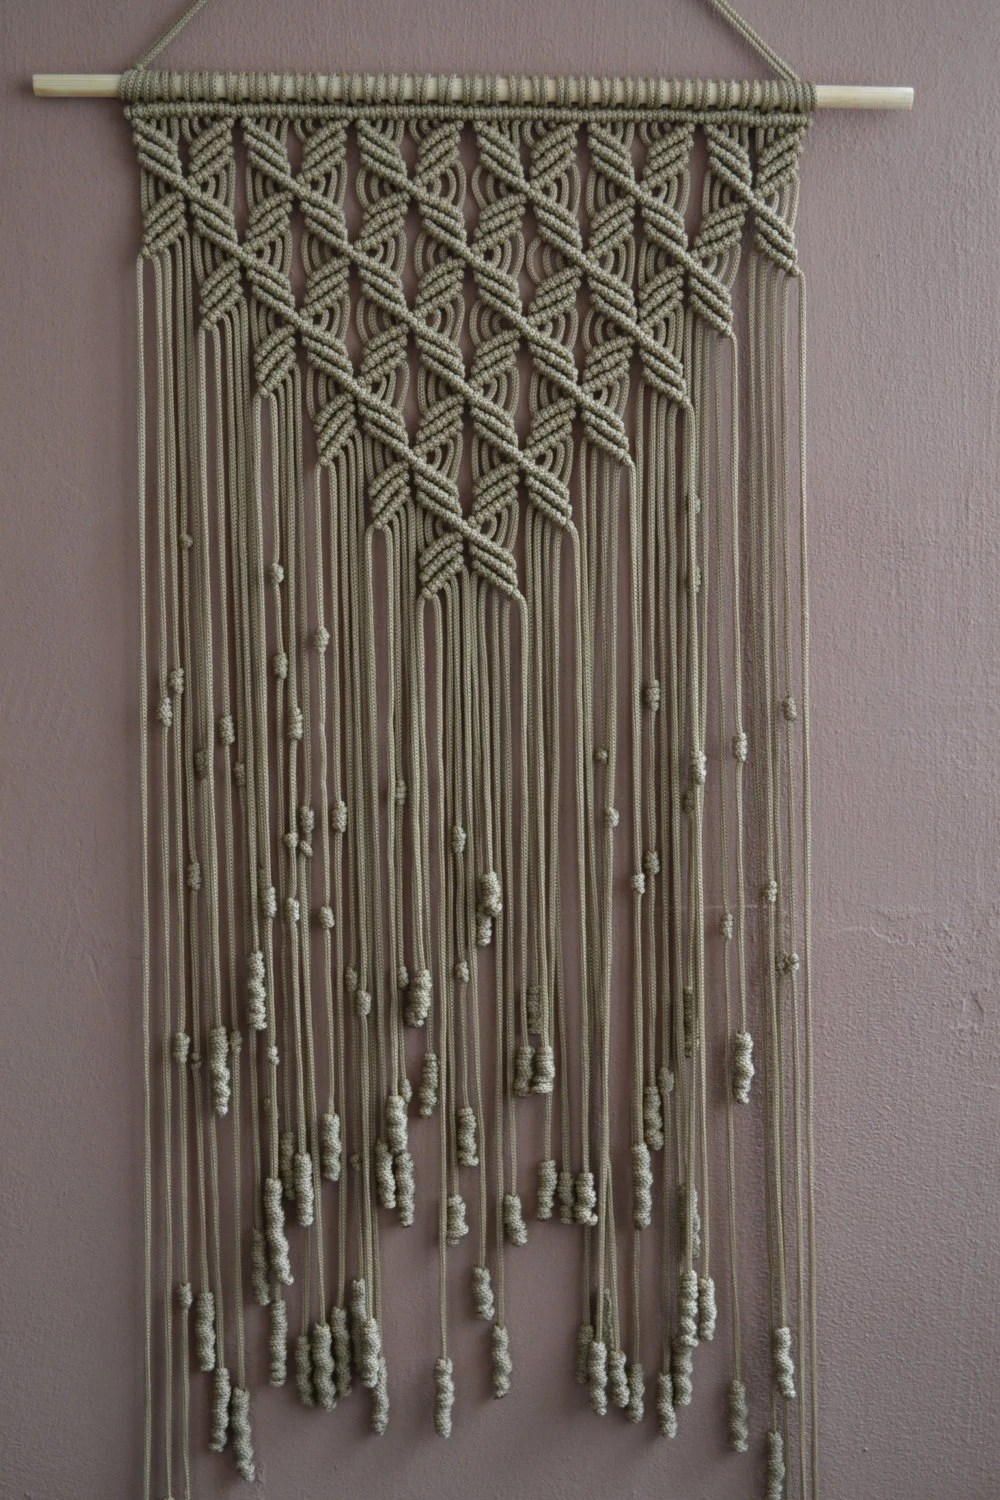 Best Home Decorative Macrame Wall Hanging B01Ms6Xx92 This Month